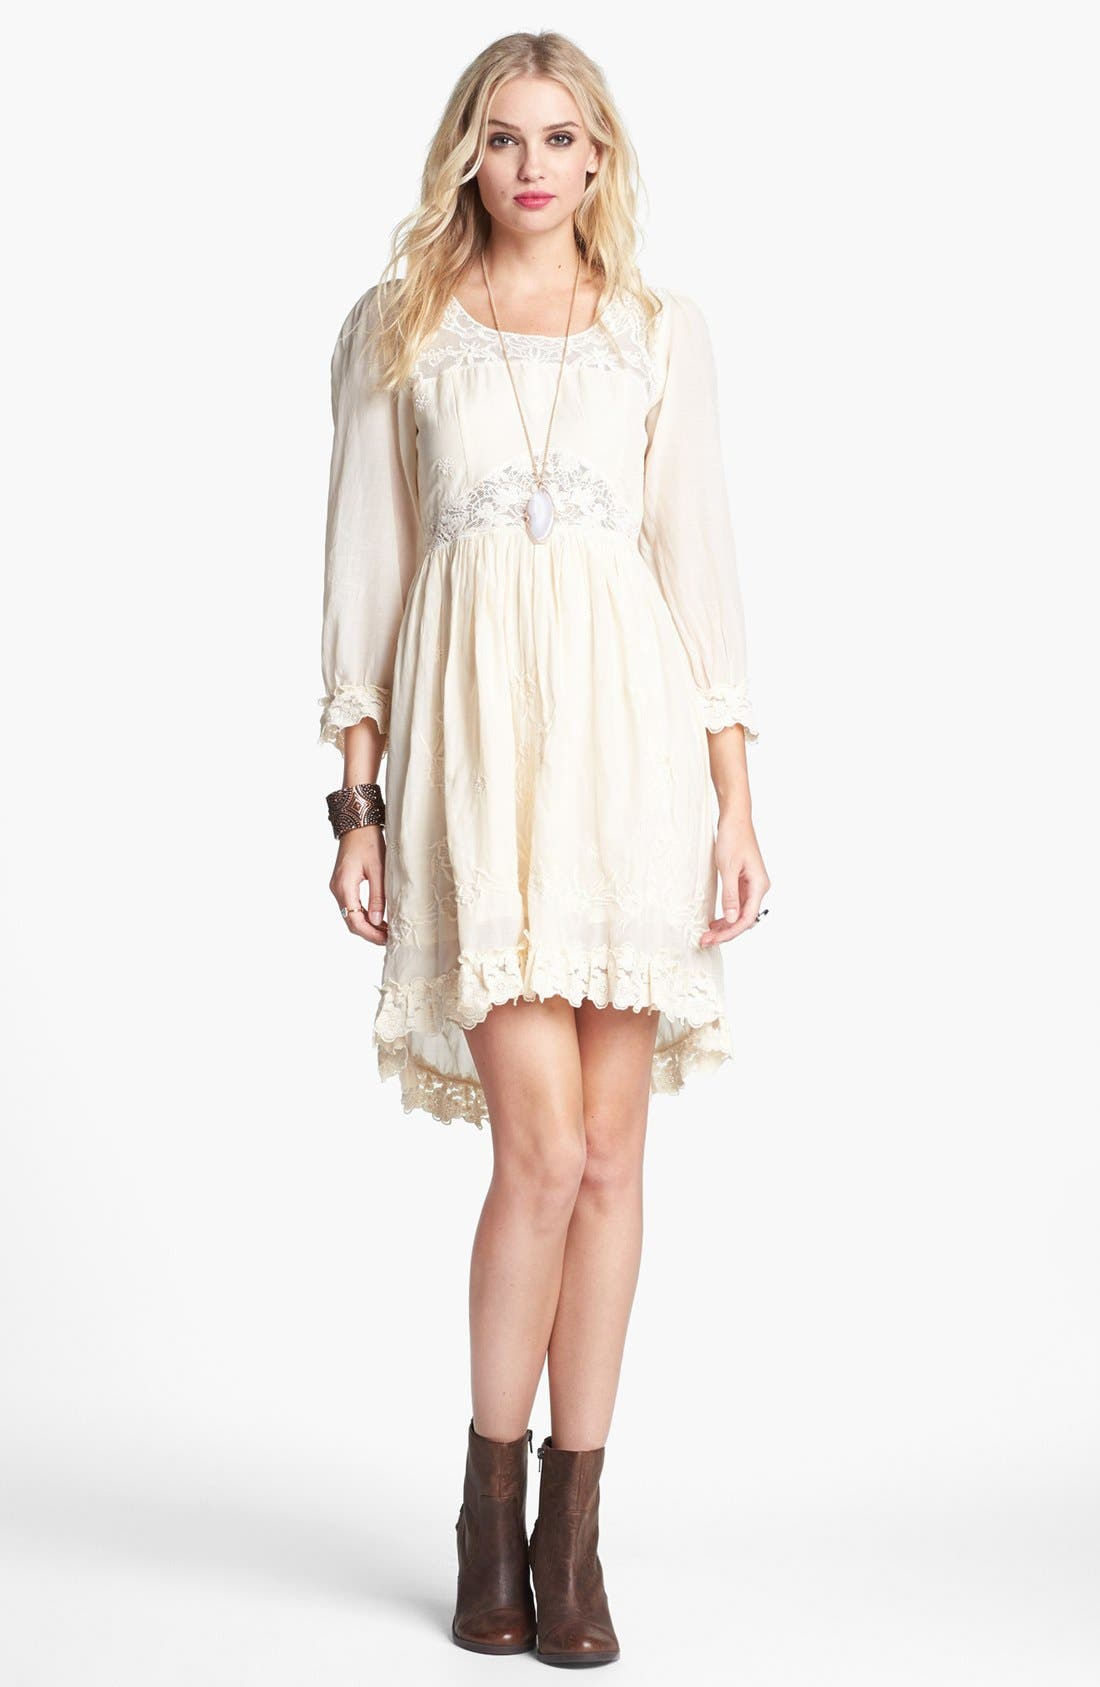 Main Image - Free People 'Montana' Embroidery & Lace Cotton High/Low Dress